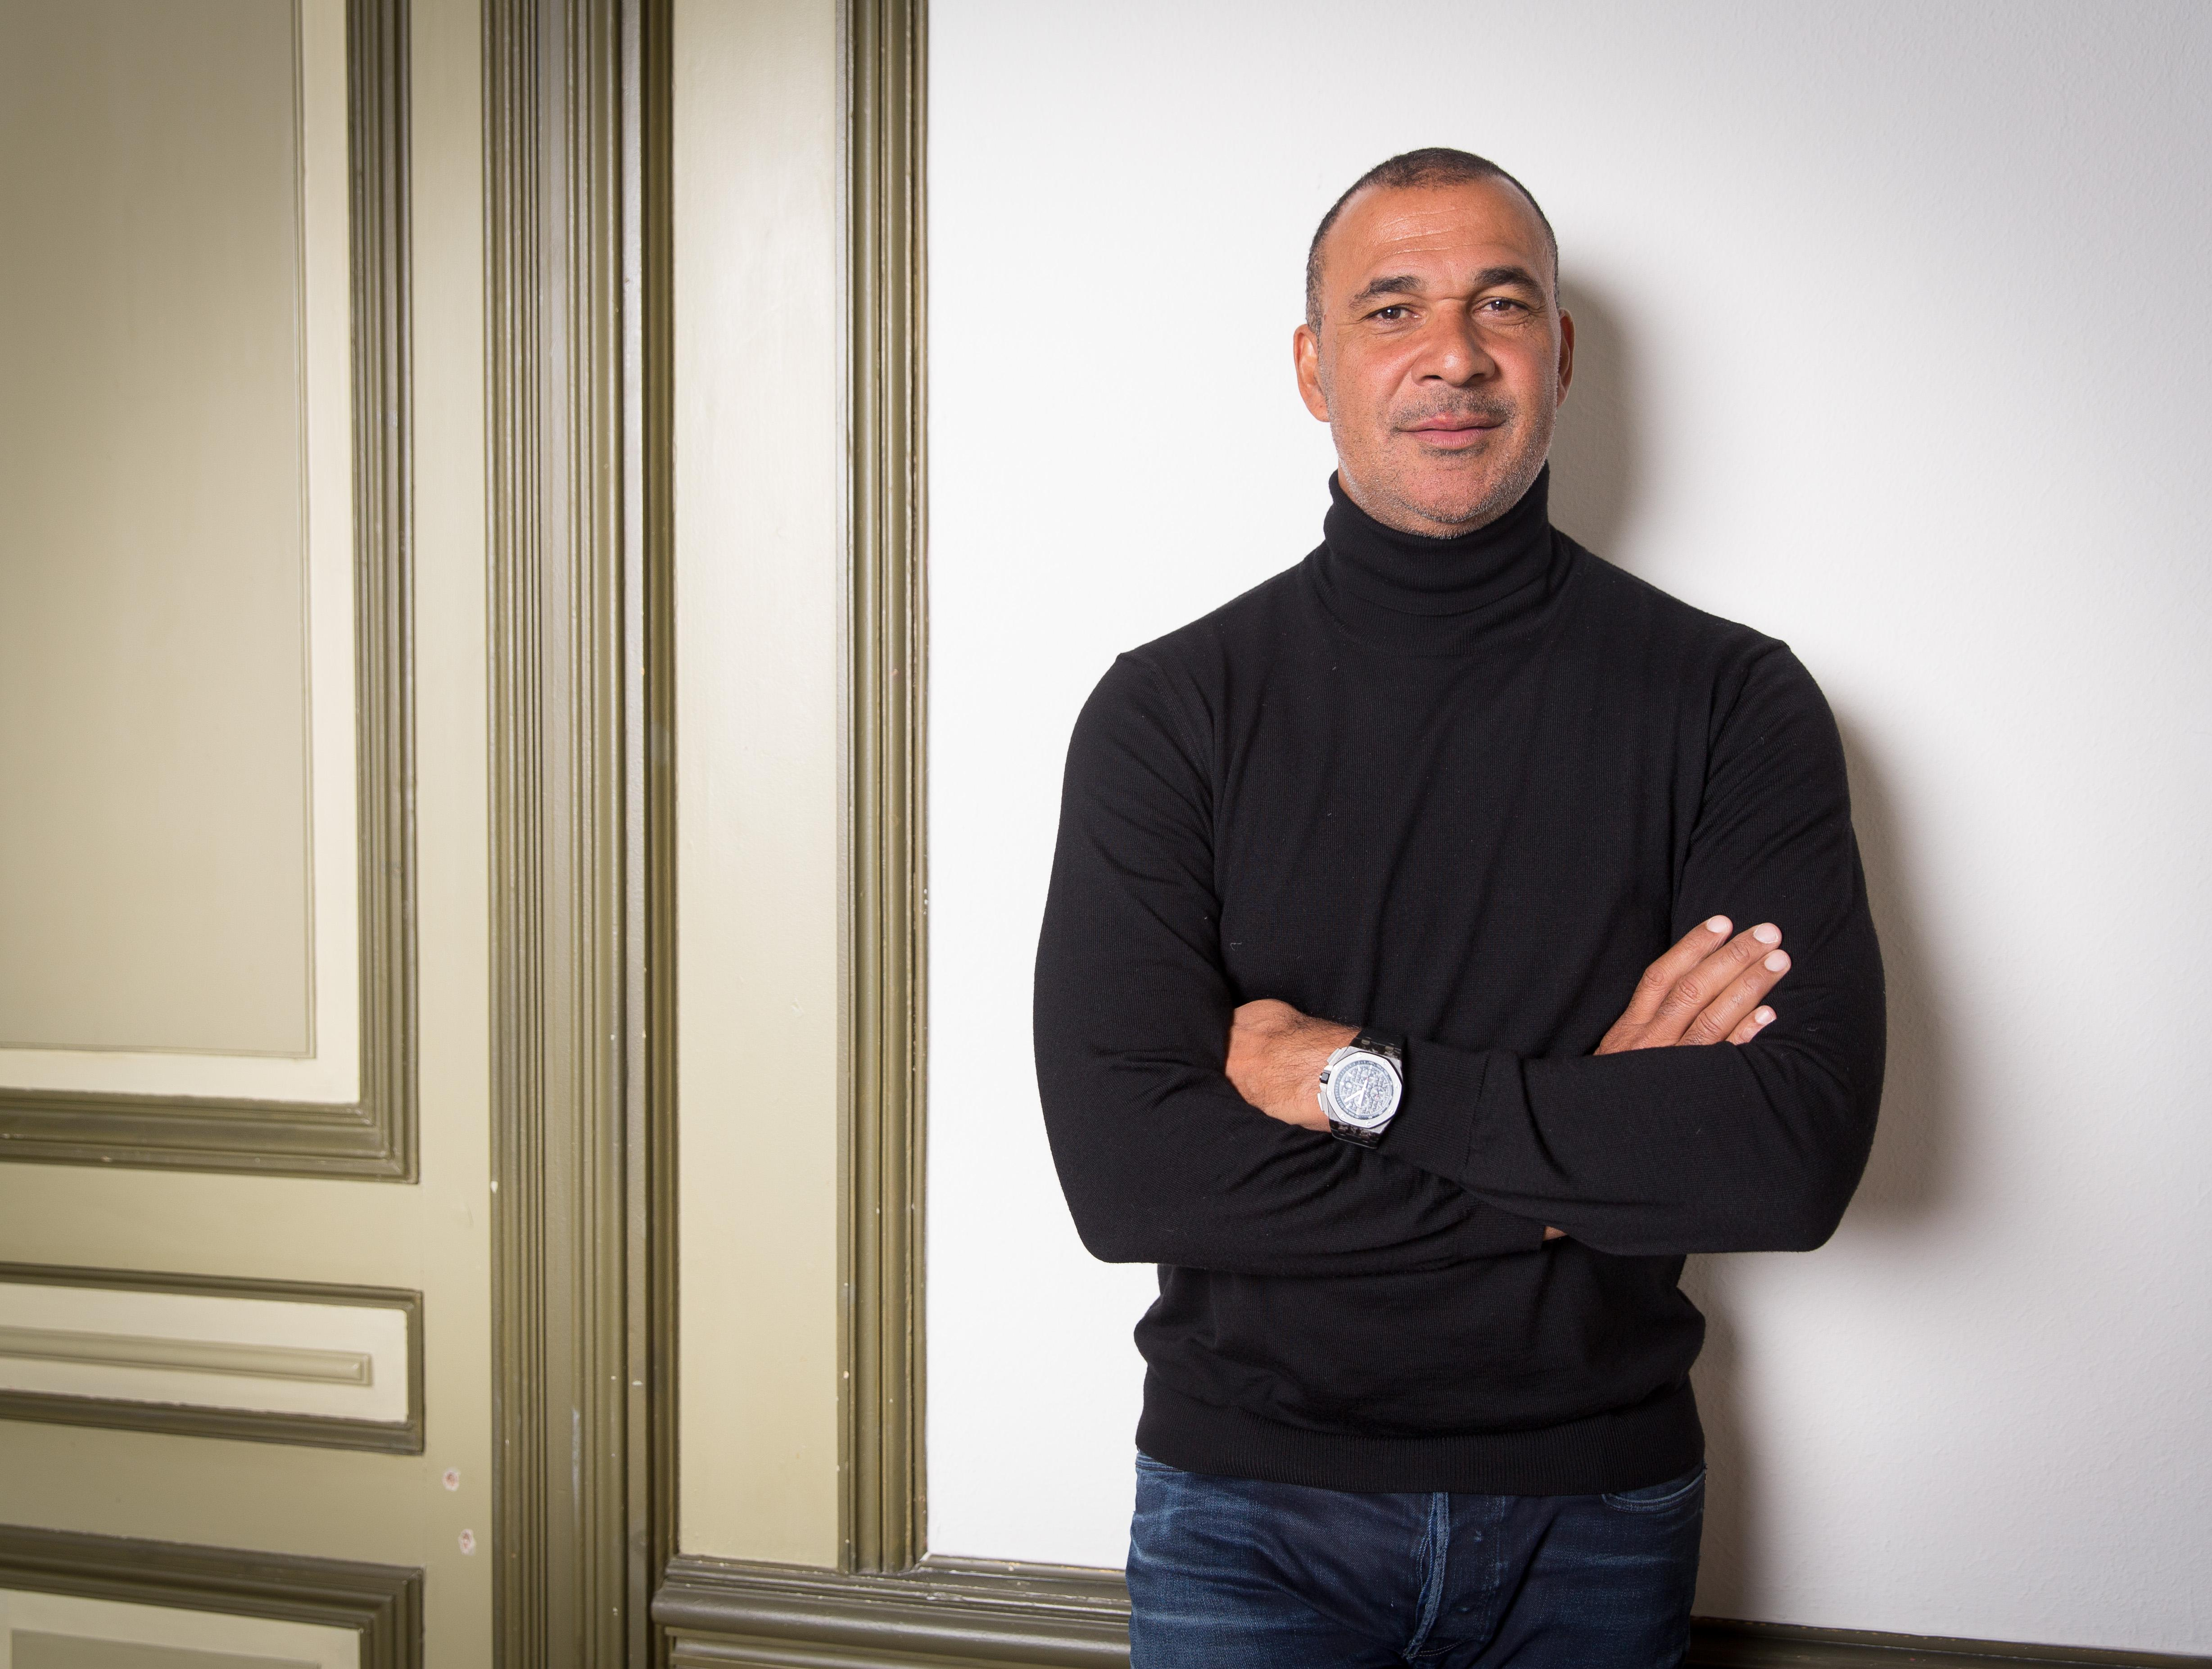 Chelsea and AC Milan legend Ruud Gullit has taken a bold step into eSports